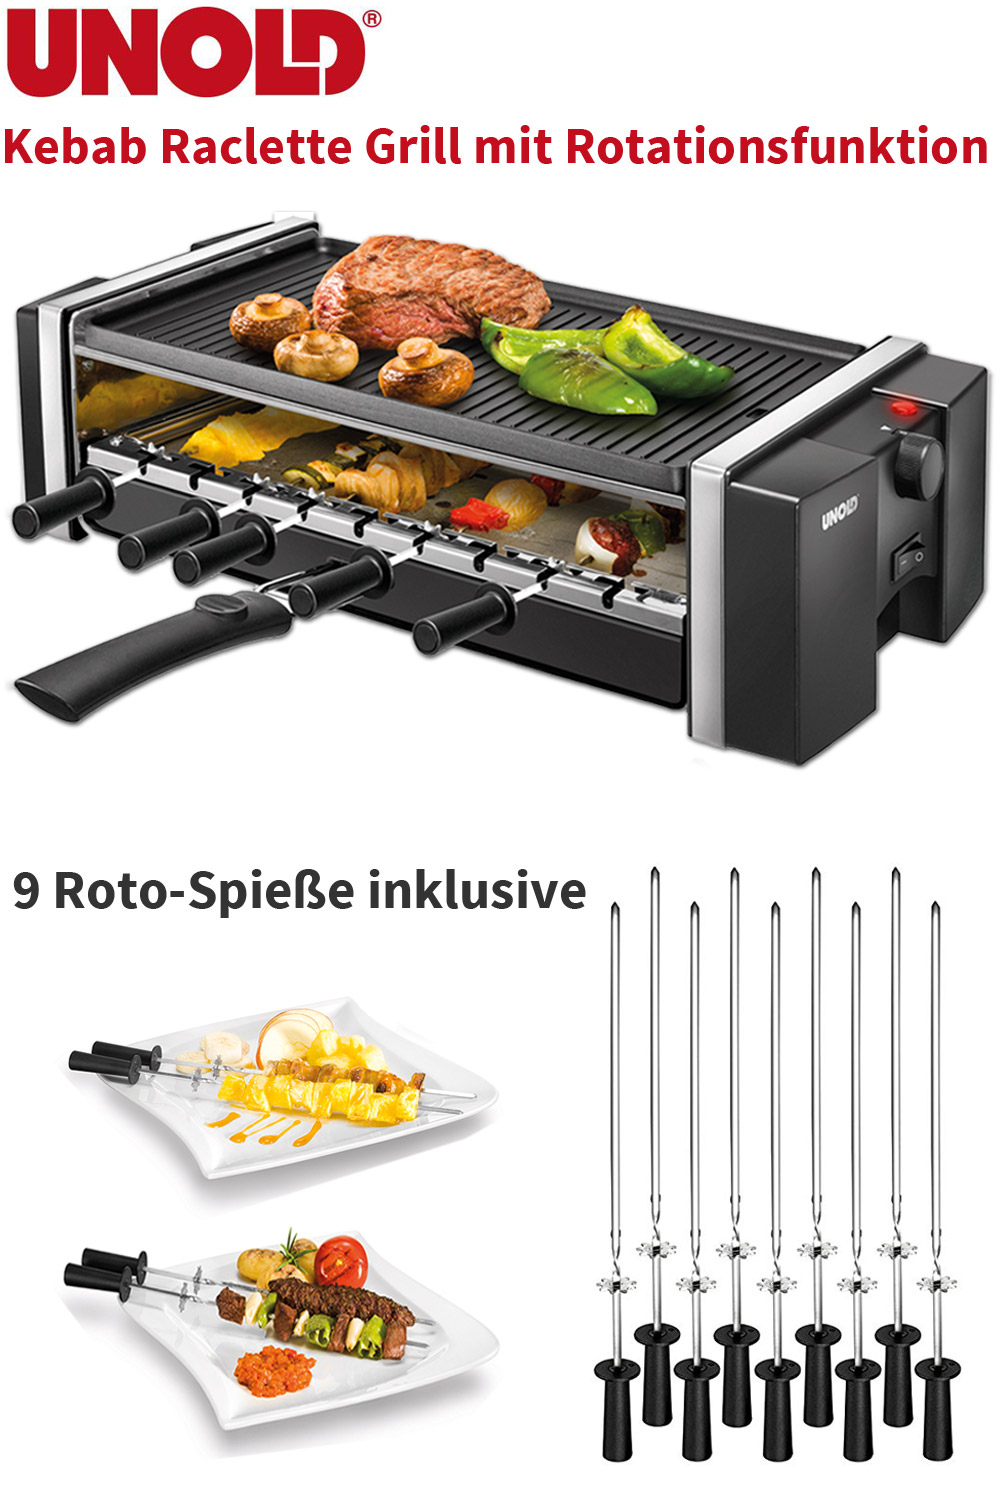 unold grill kebab raclette tisch elektro grill 9 sich drehende roto spie e ebay. Black Bedroom Furniture Sets. Home Design Ideas